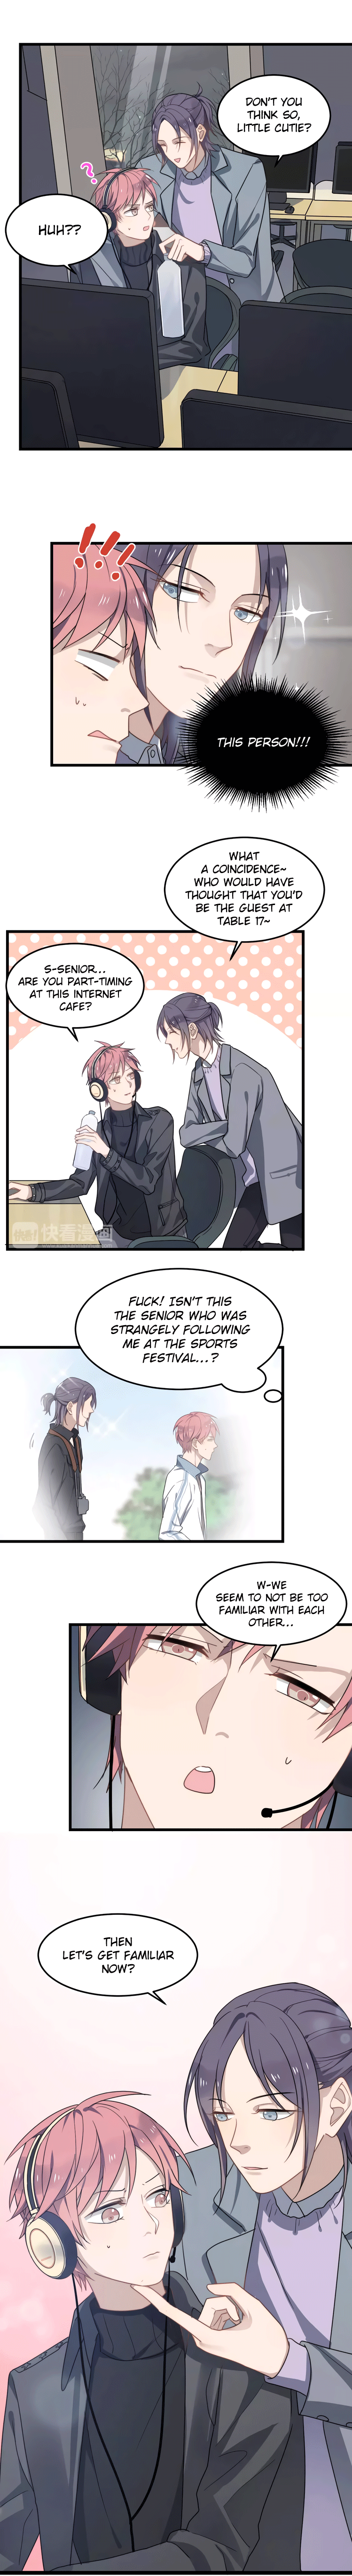 Too Close - chapter 23 - #3